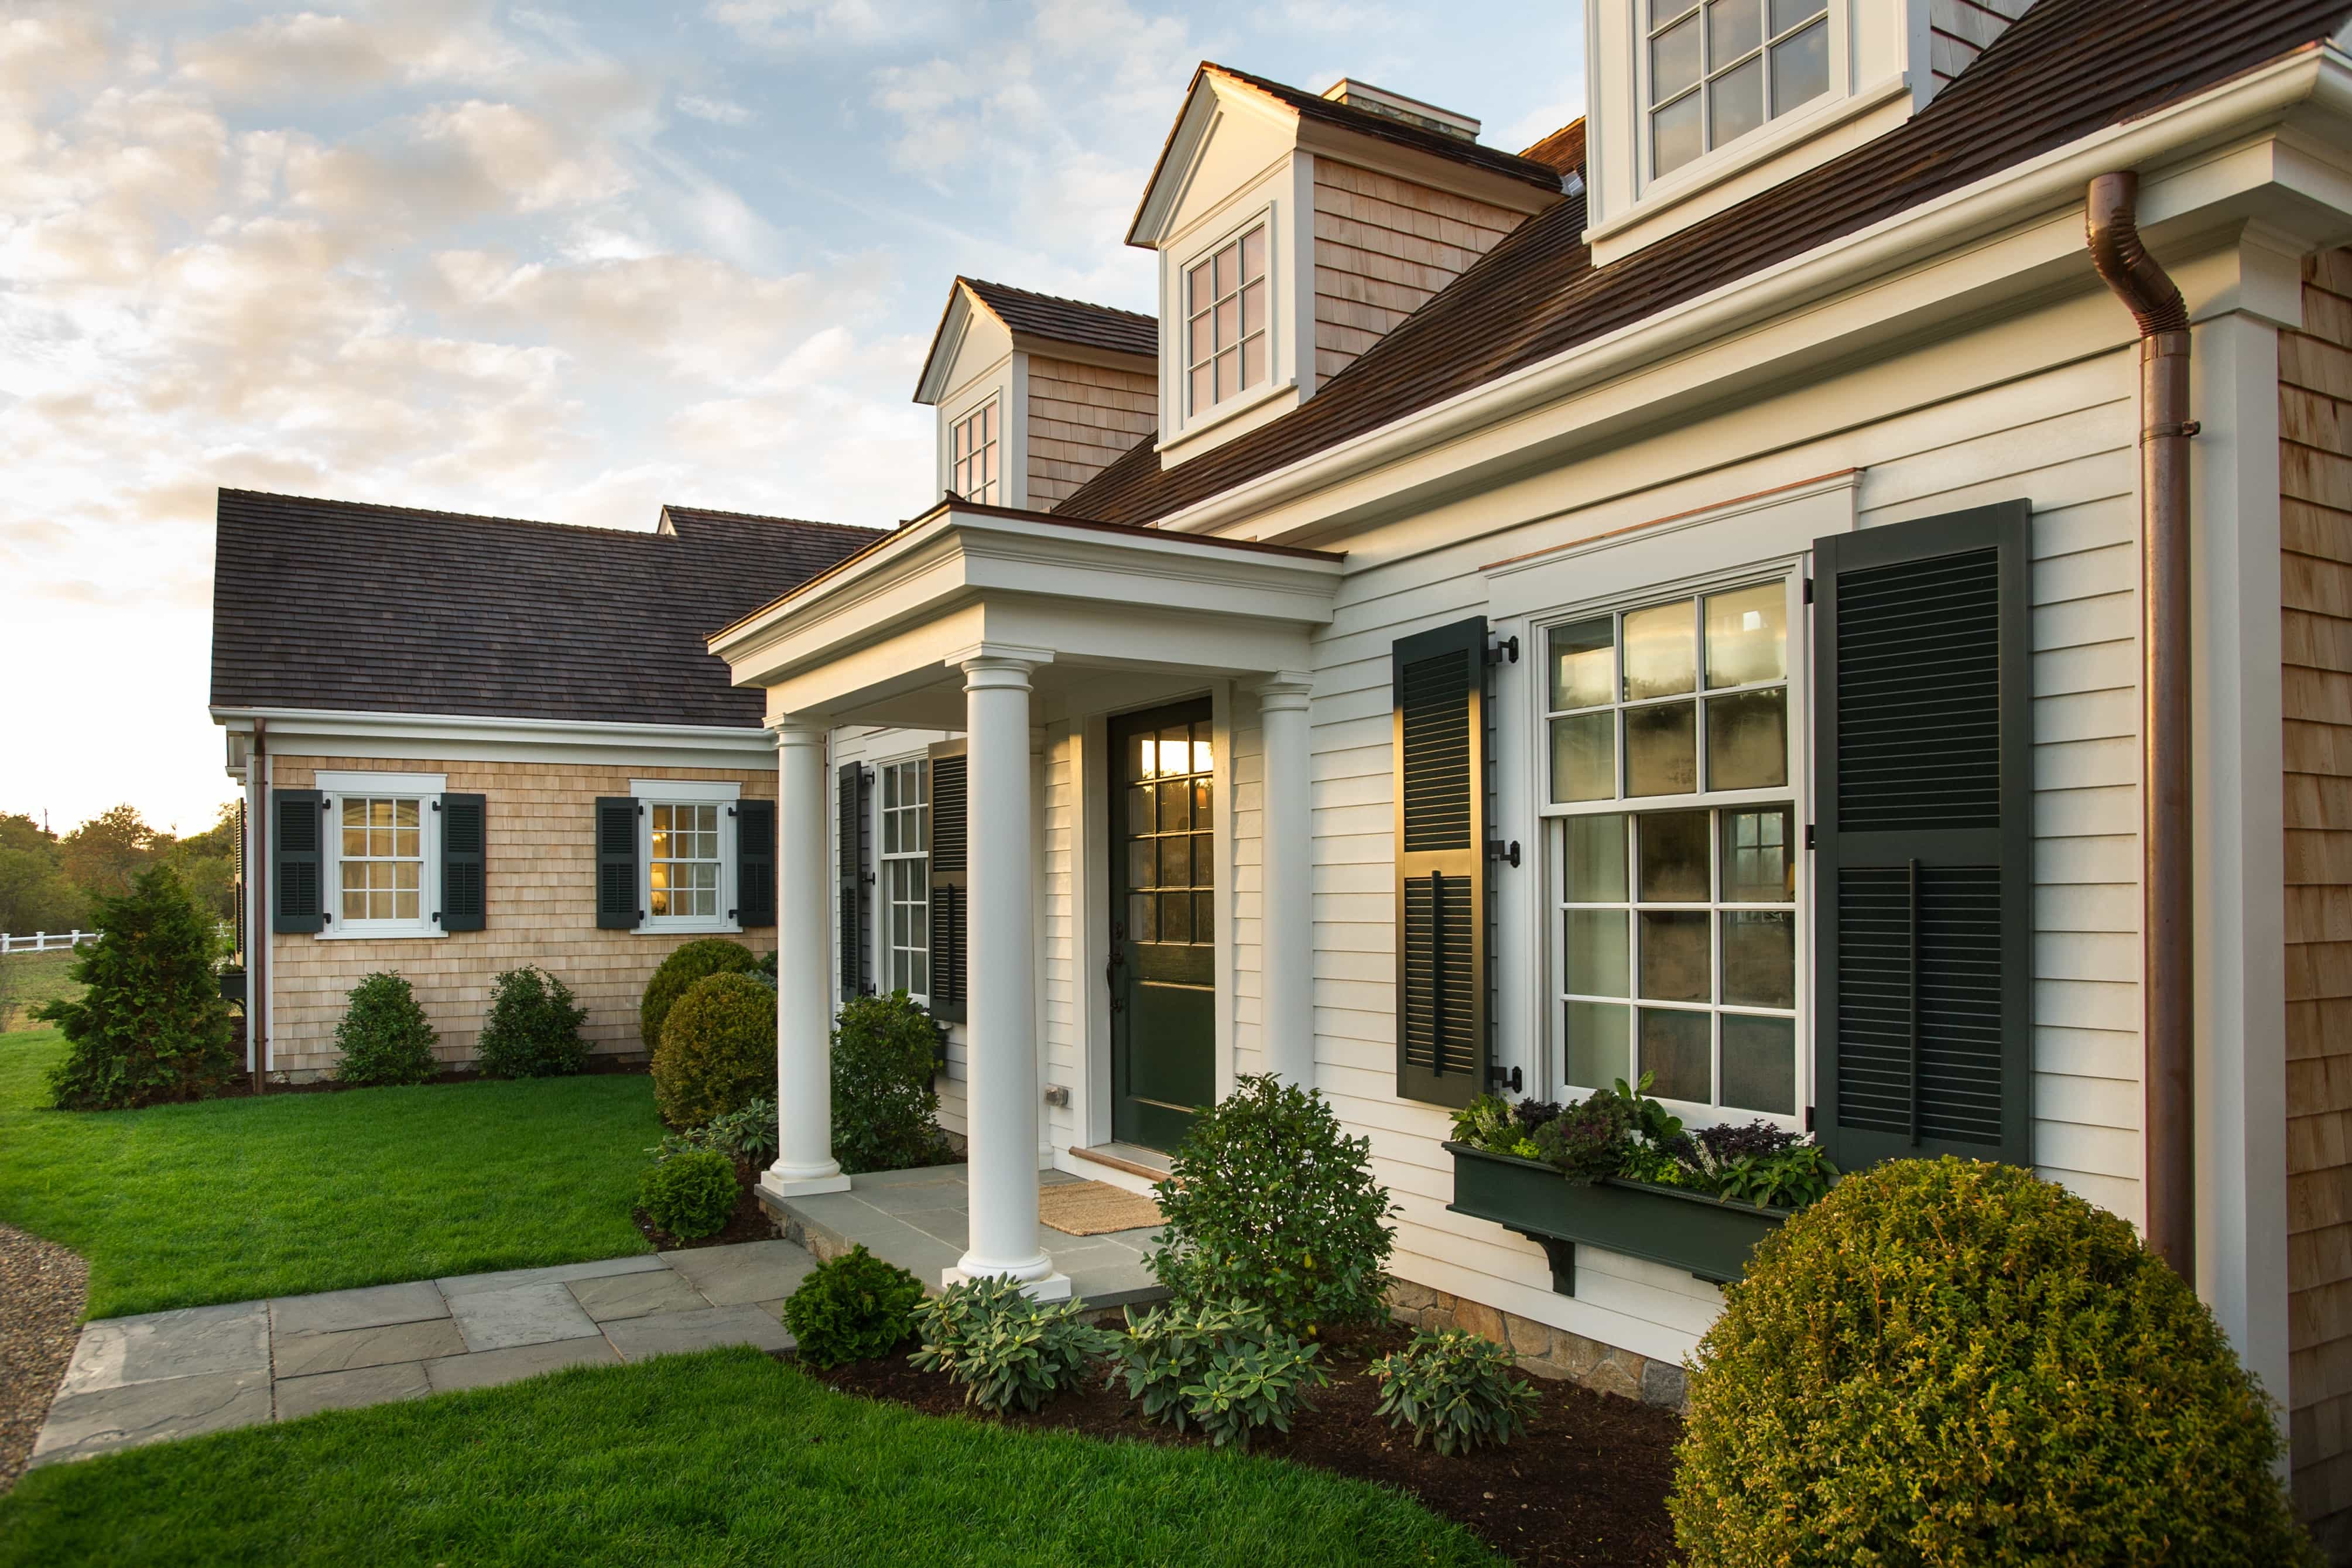 Featured Image of Cape Cod Home With Covered Portico